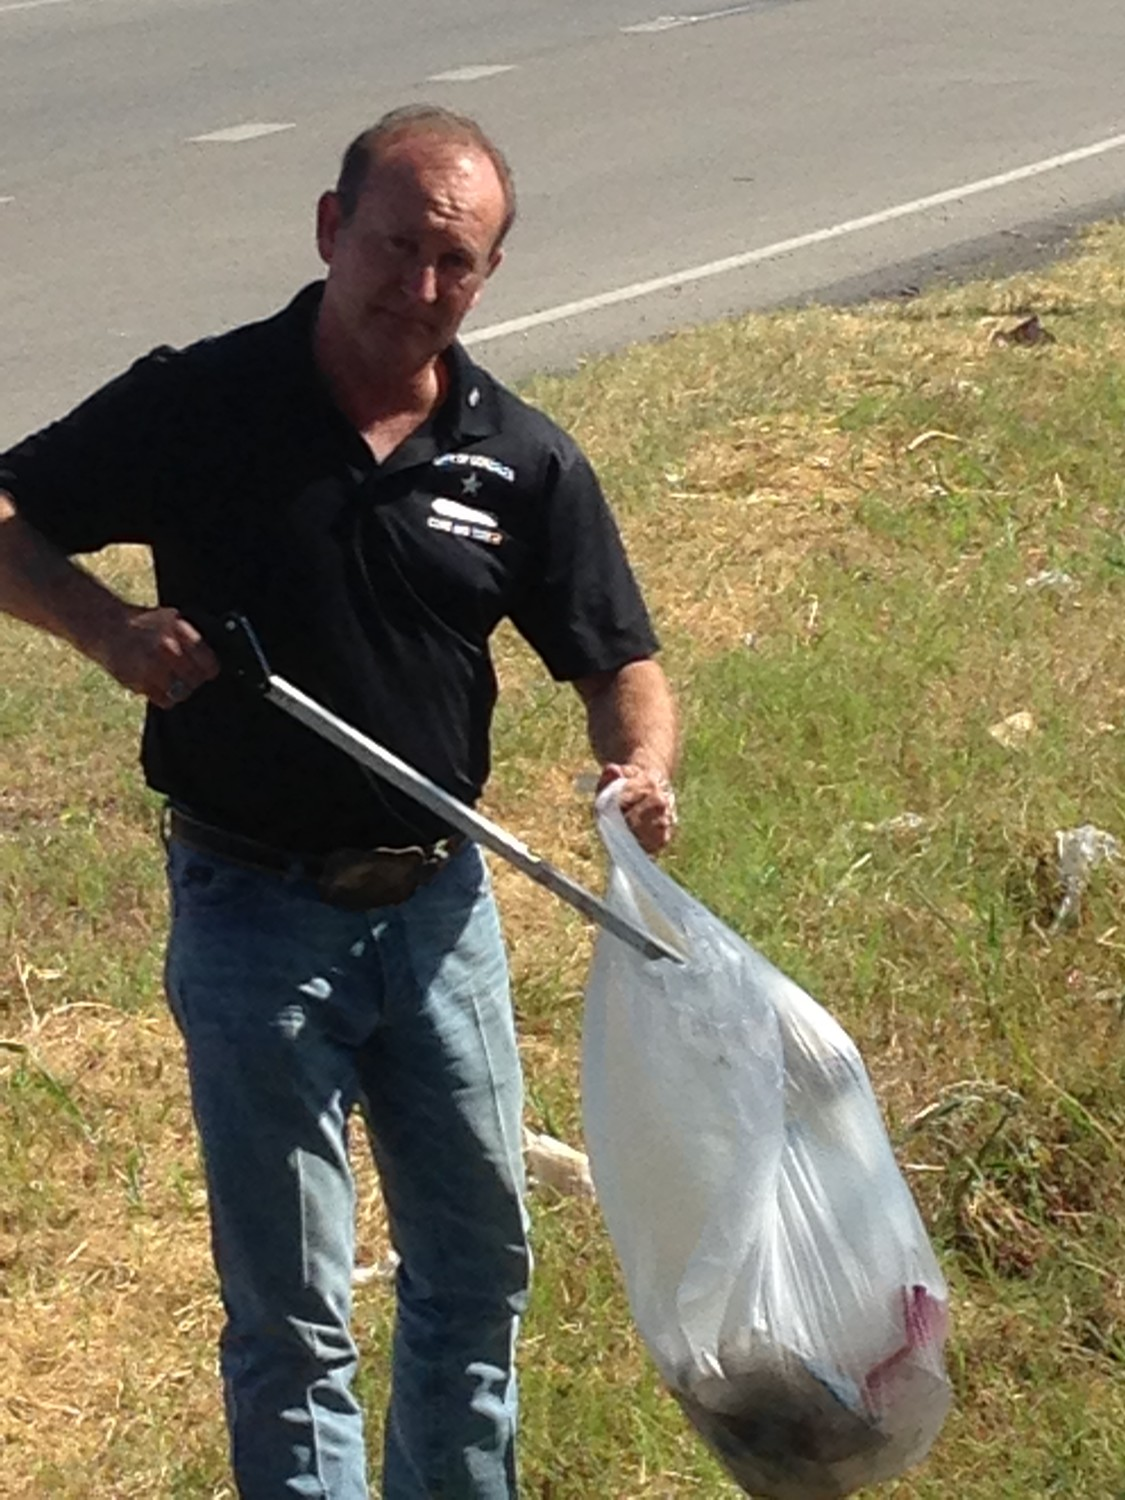 Gonzales City Tourism Director Clint Hille helped clean up trash along the highway near J.B. Wells over the weekend.